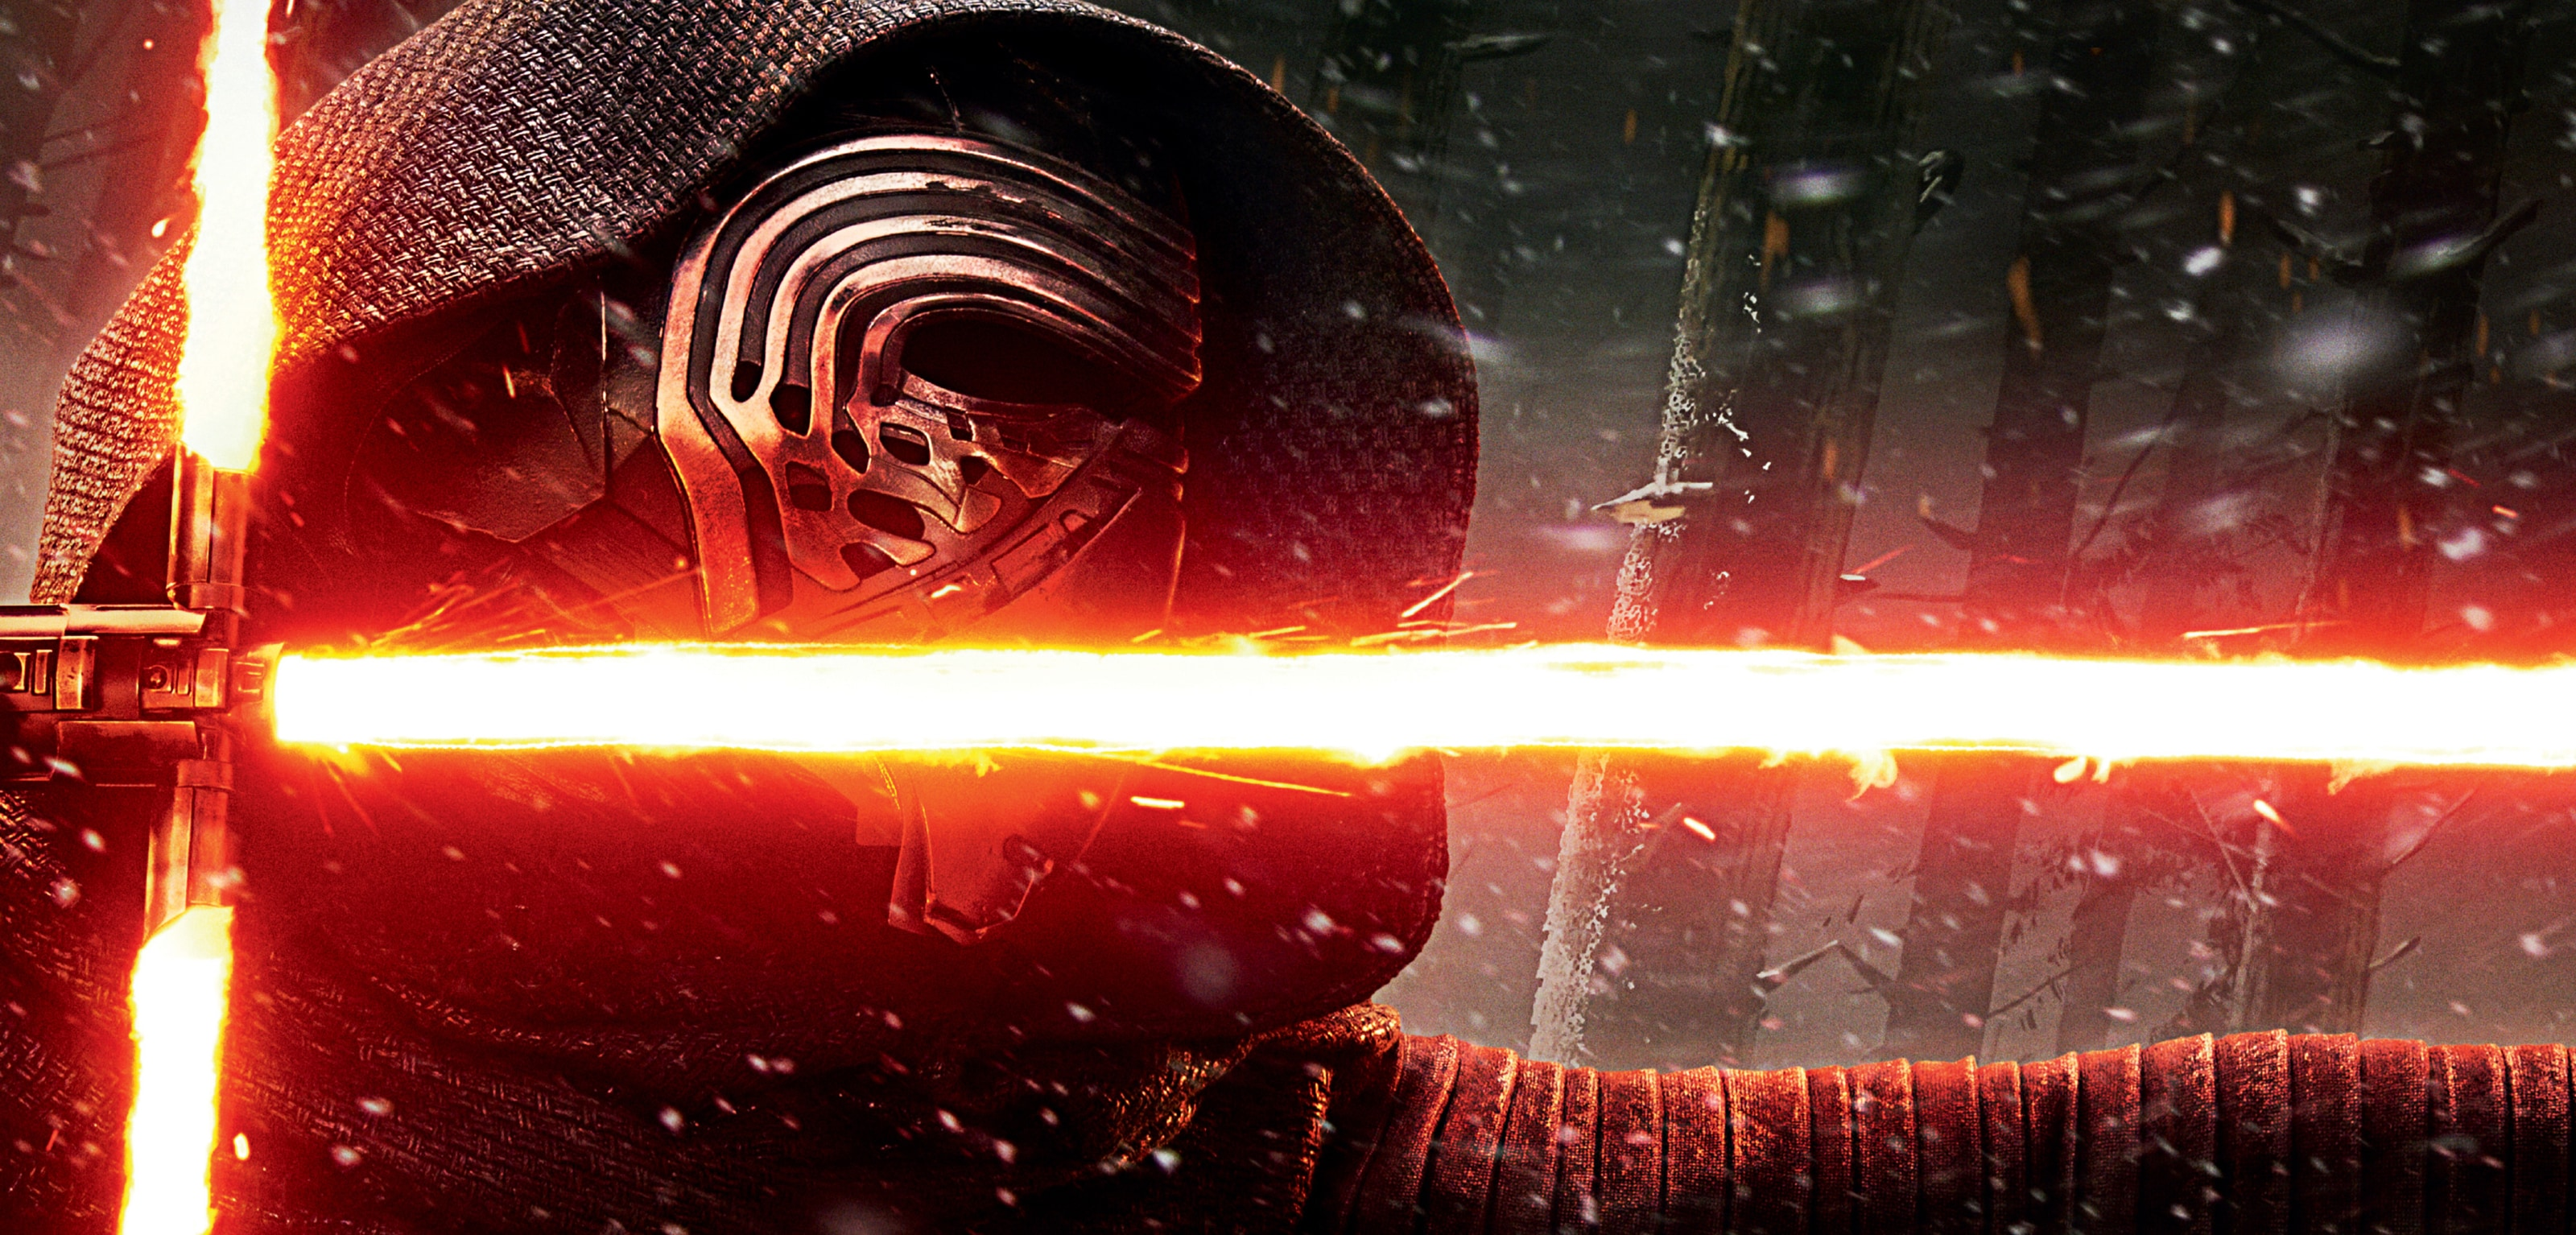 An image of Kylo Ren from Star Wars: The Force Awakens